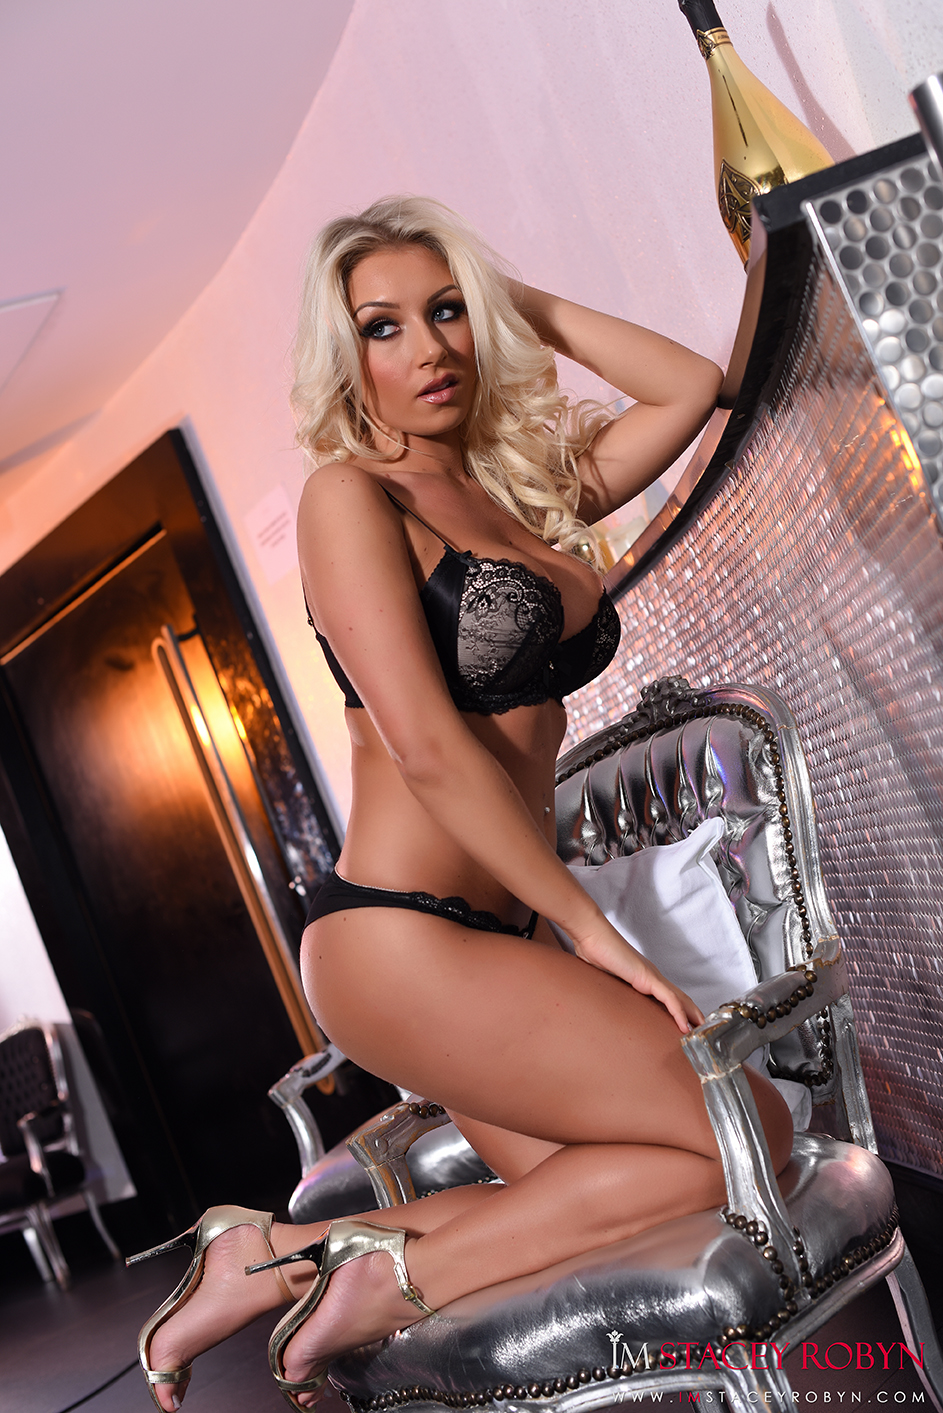 Stacey Robyn teasing in black lace lingerie